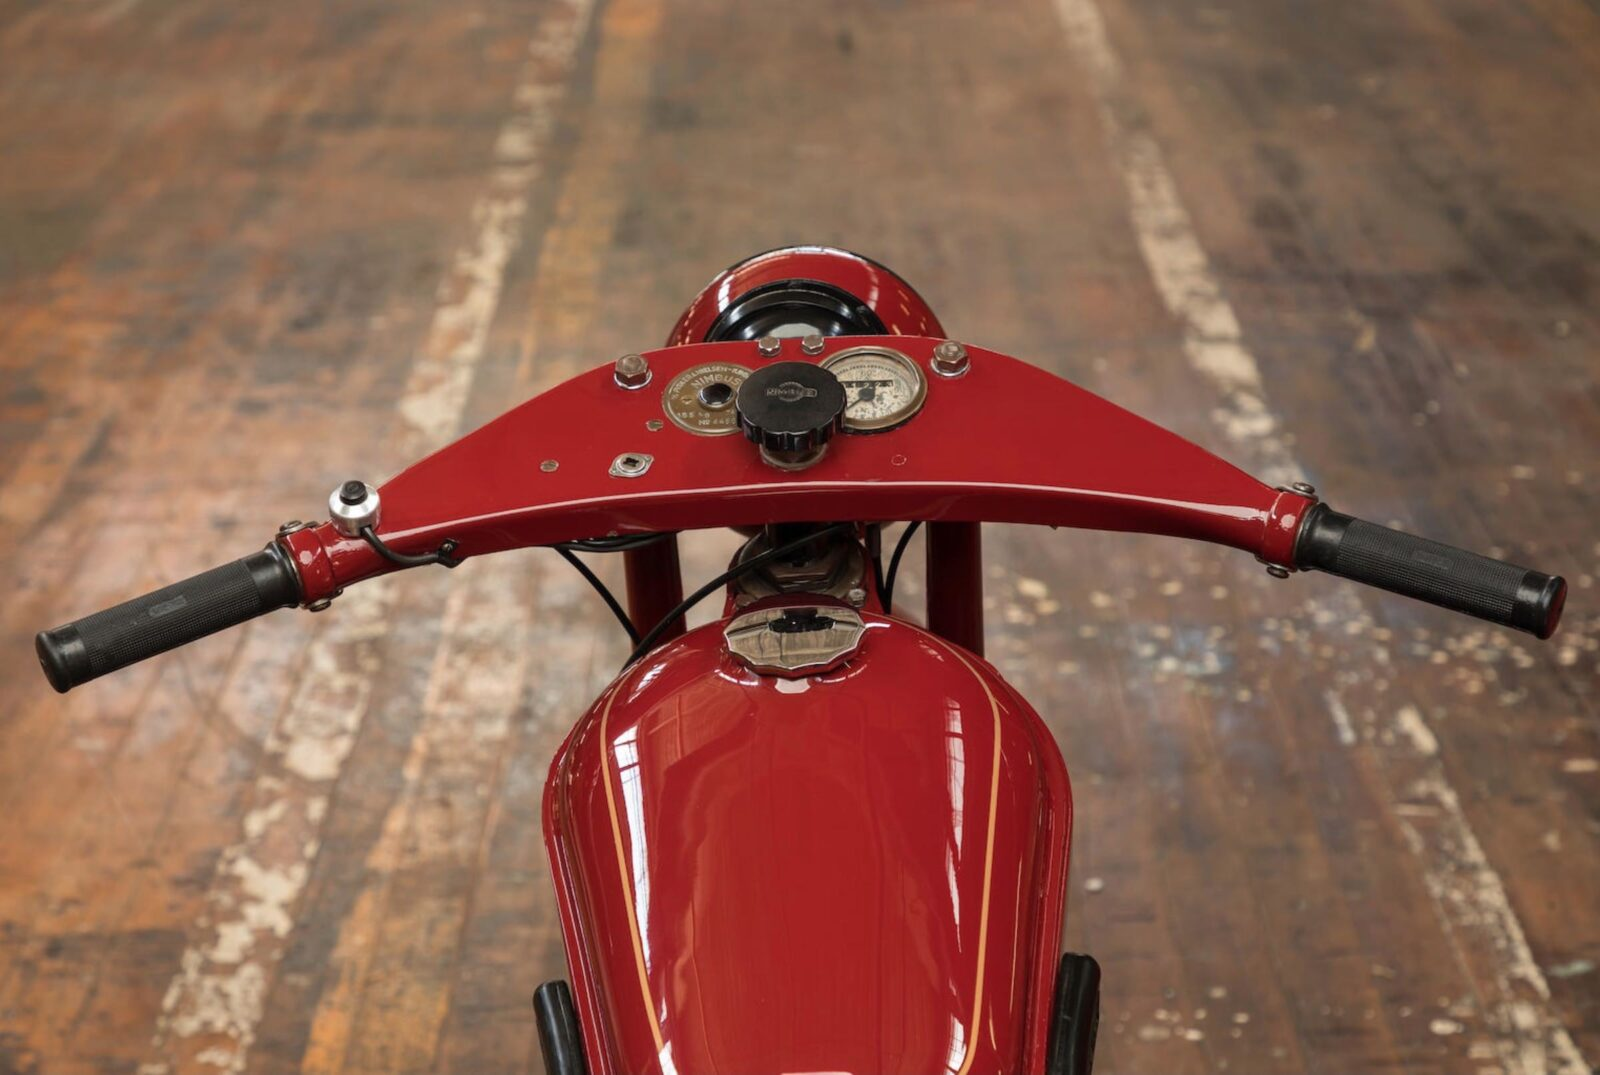 Nimbus Model C Motorcycle Handlebars